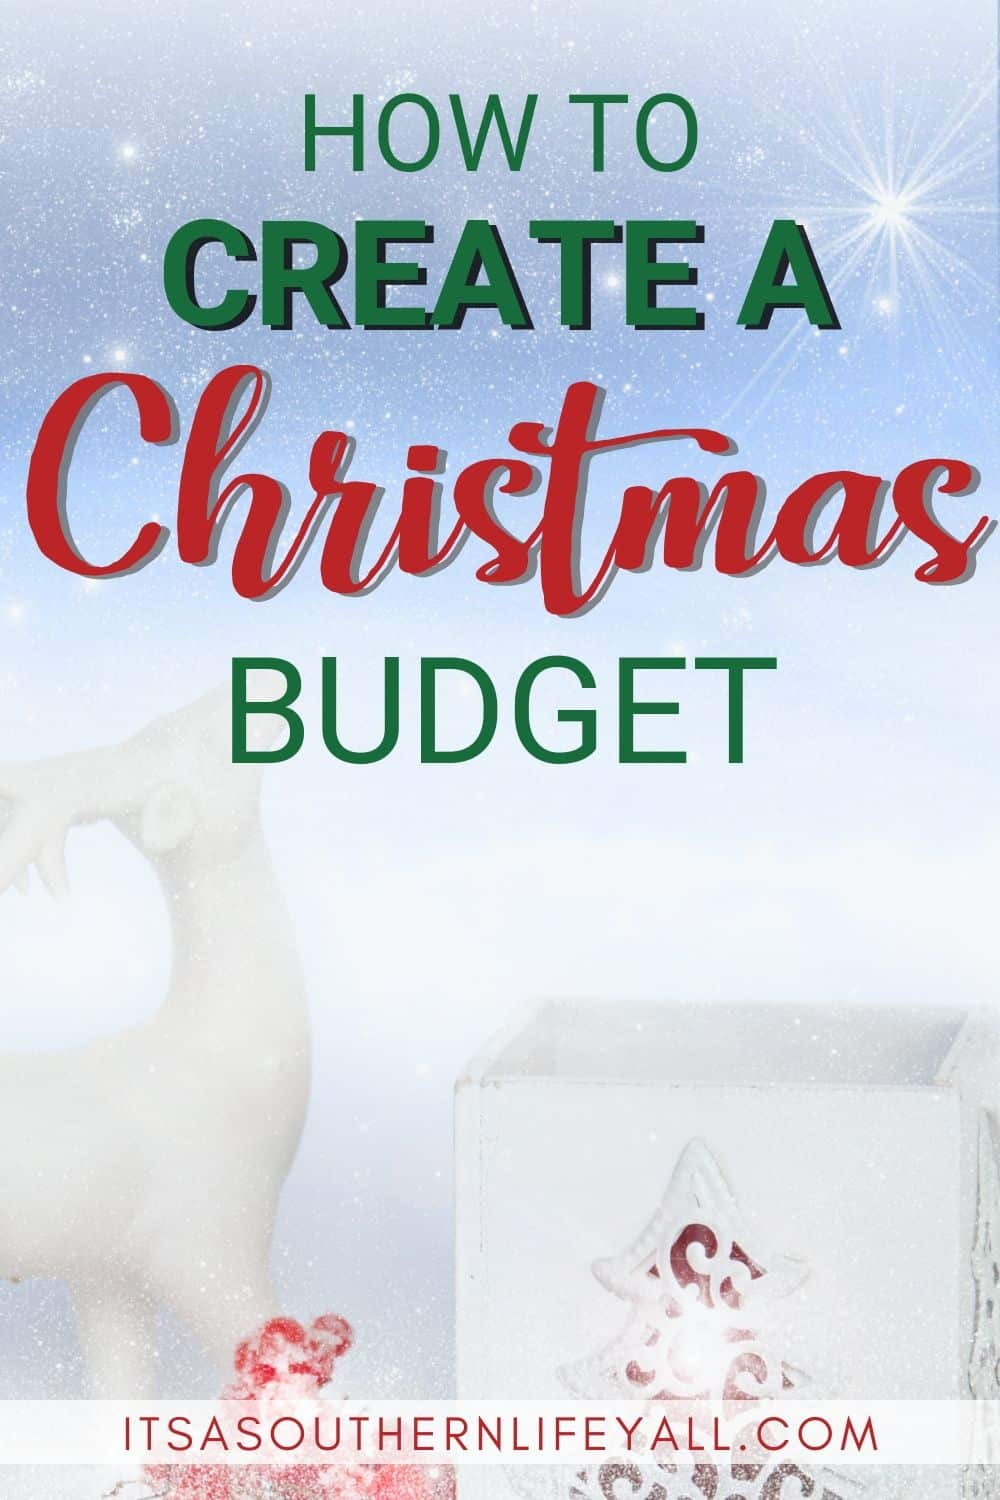 Christmas image with text overlay How to create a Christmas Budget